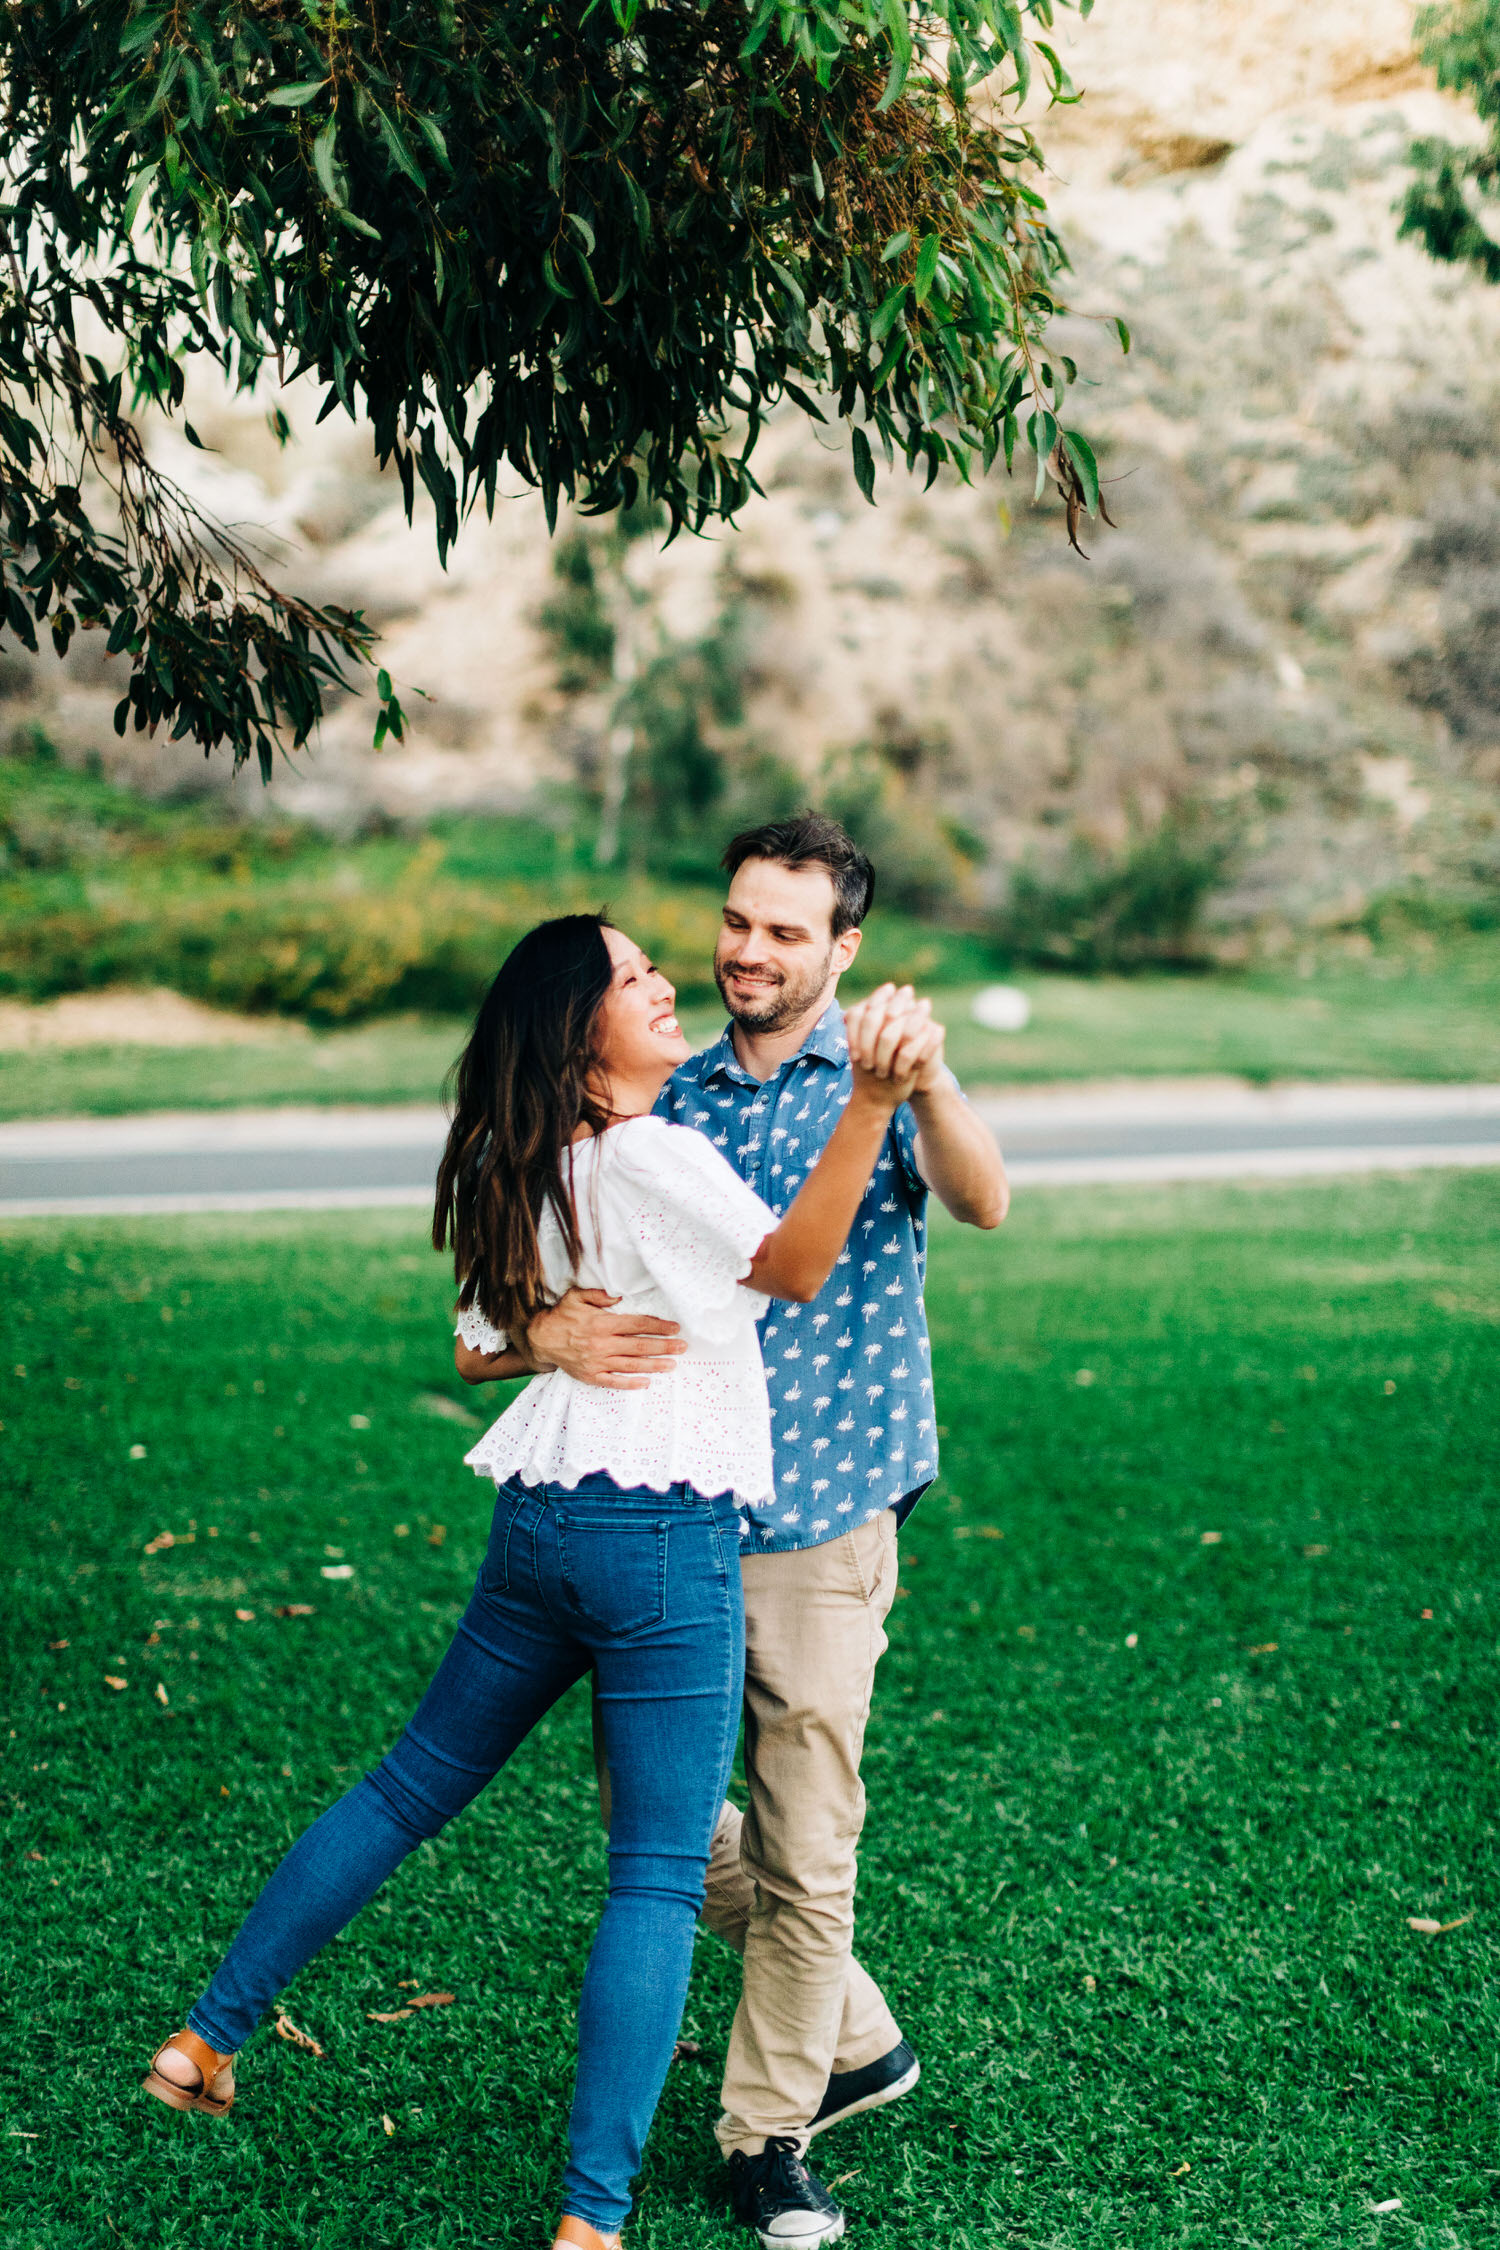 Angelina&Neal-Edits_1018-1-Clarisse-Rae-Southern-California-Wedding-Photographer-Orange-county-Engagement-Photos.jpg